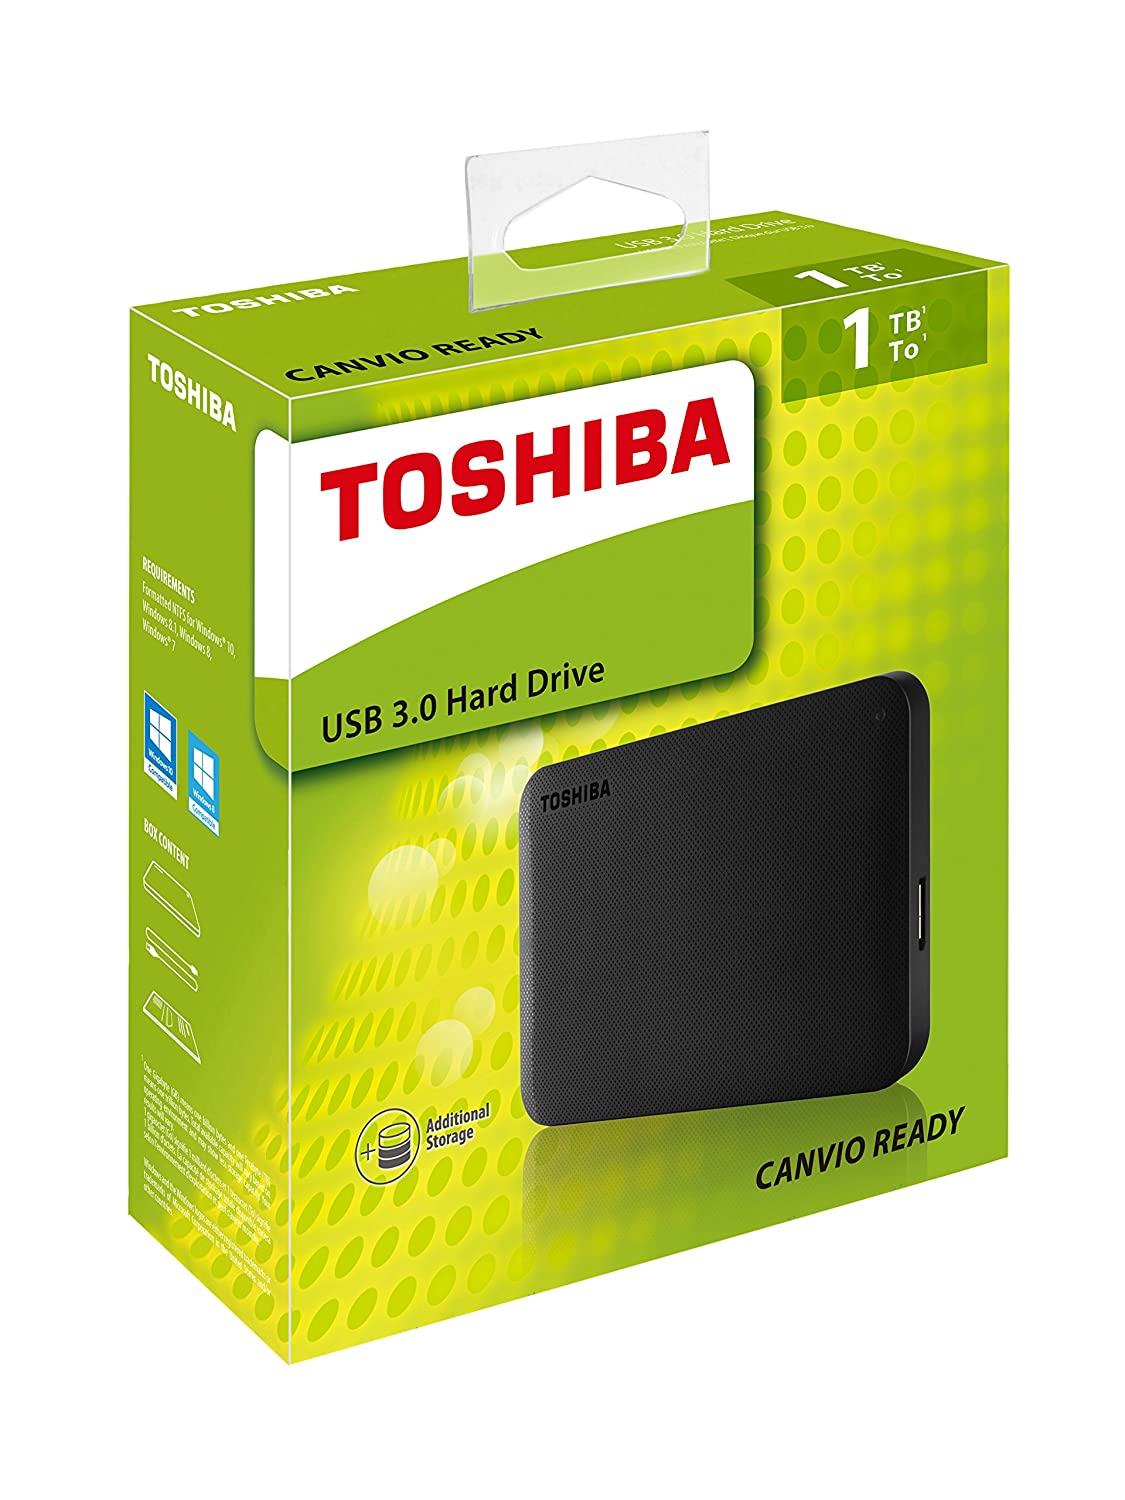 Amazon. In: buy toshiba 1tb 2. 5 canvio ready usb 3. 0 portable external hard drive (black) hdtp210ak3aa (2017 model) online at low price in india on amazon. In. Check out toshiba 1tb 2. 5 canvio ready usb 3. 0 portable external hard drive (black) hdtp210ak3aa (2017 model).